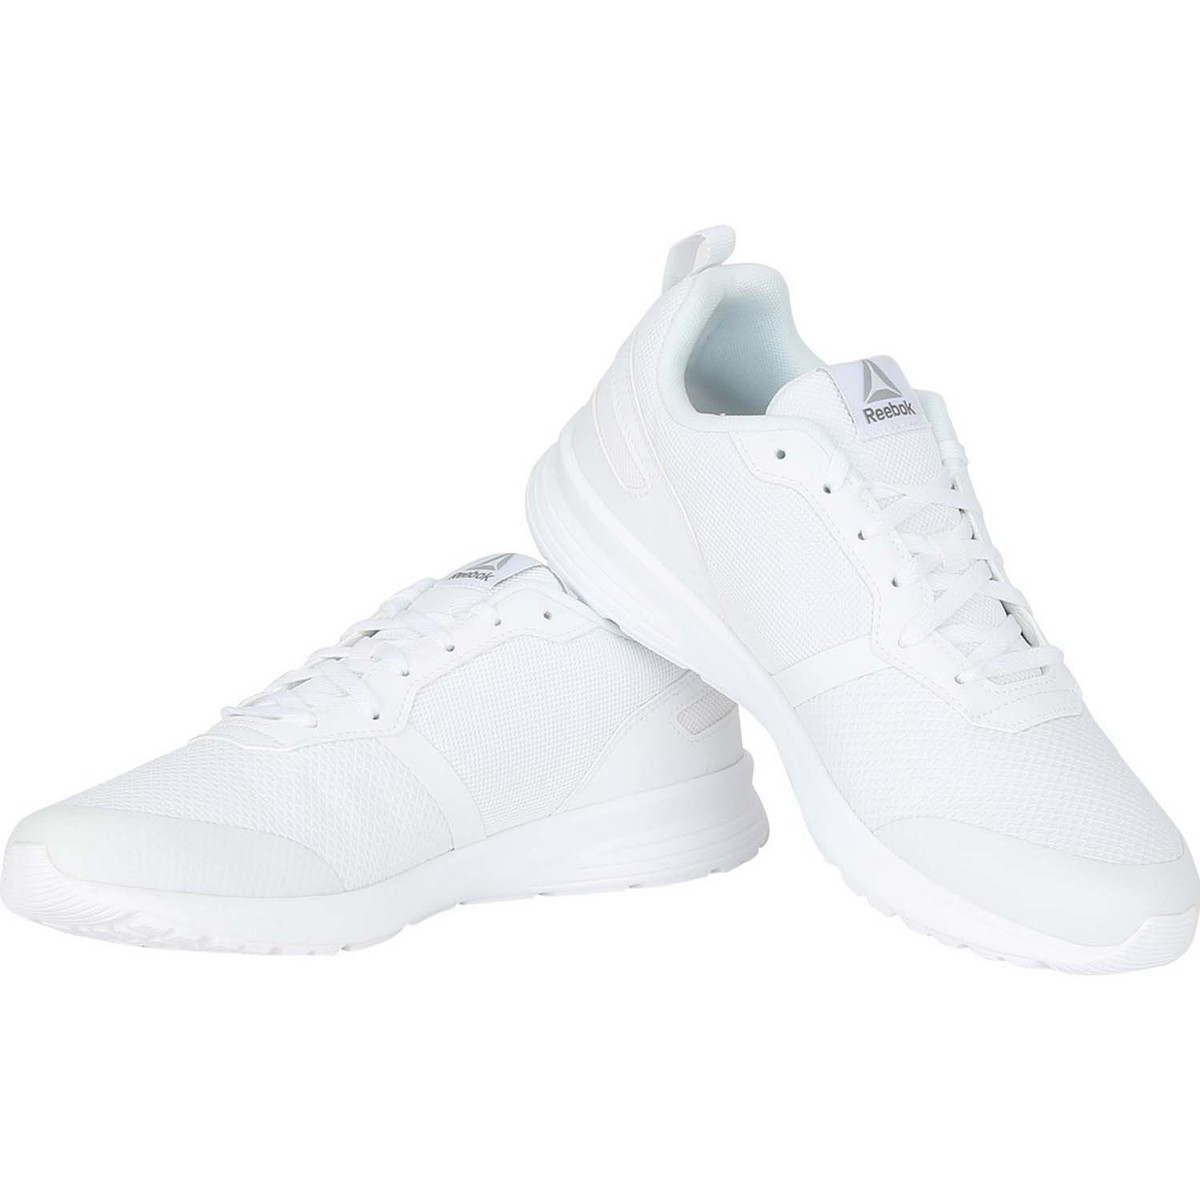 Reebok Men's Sports Shoes BS6895 White 44